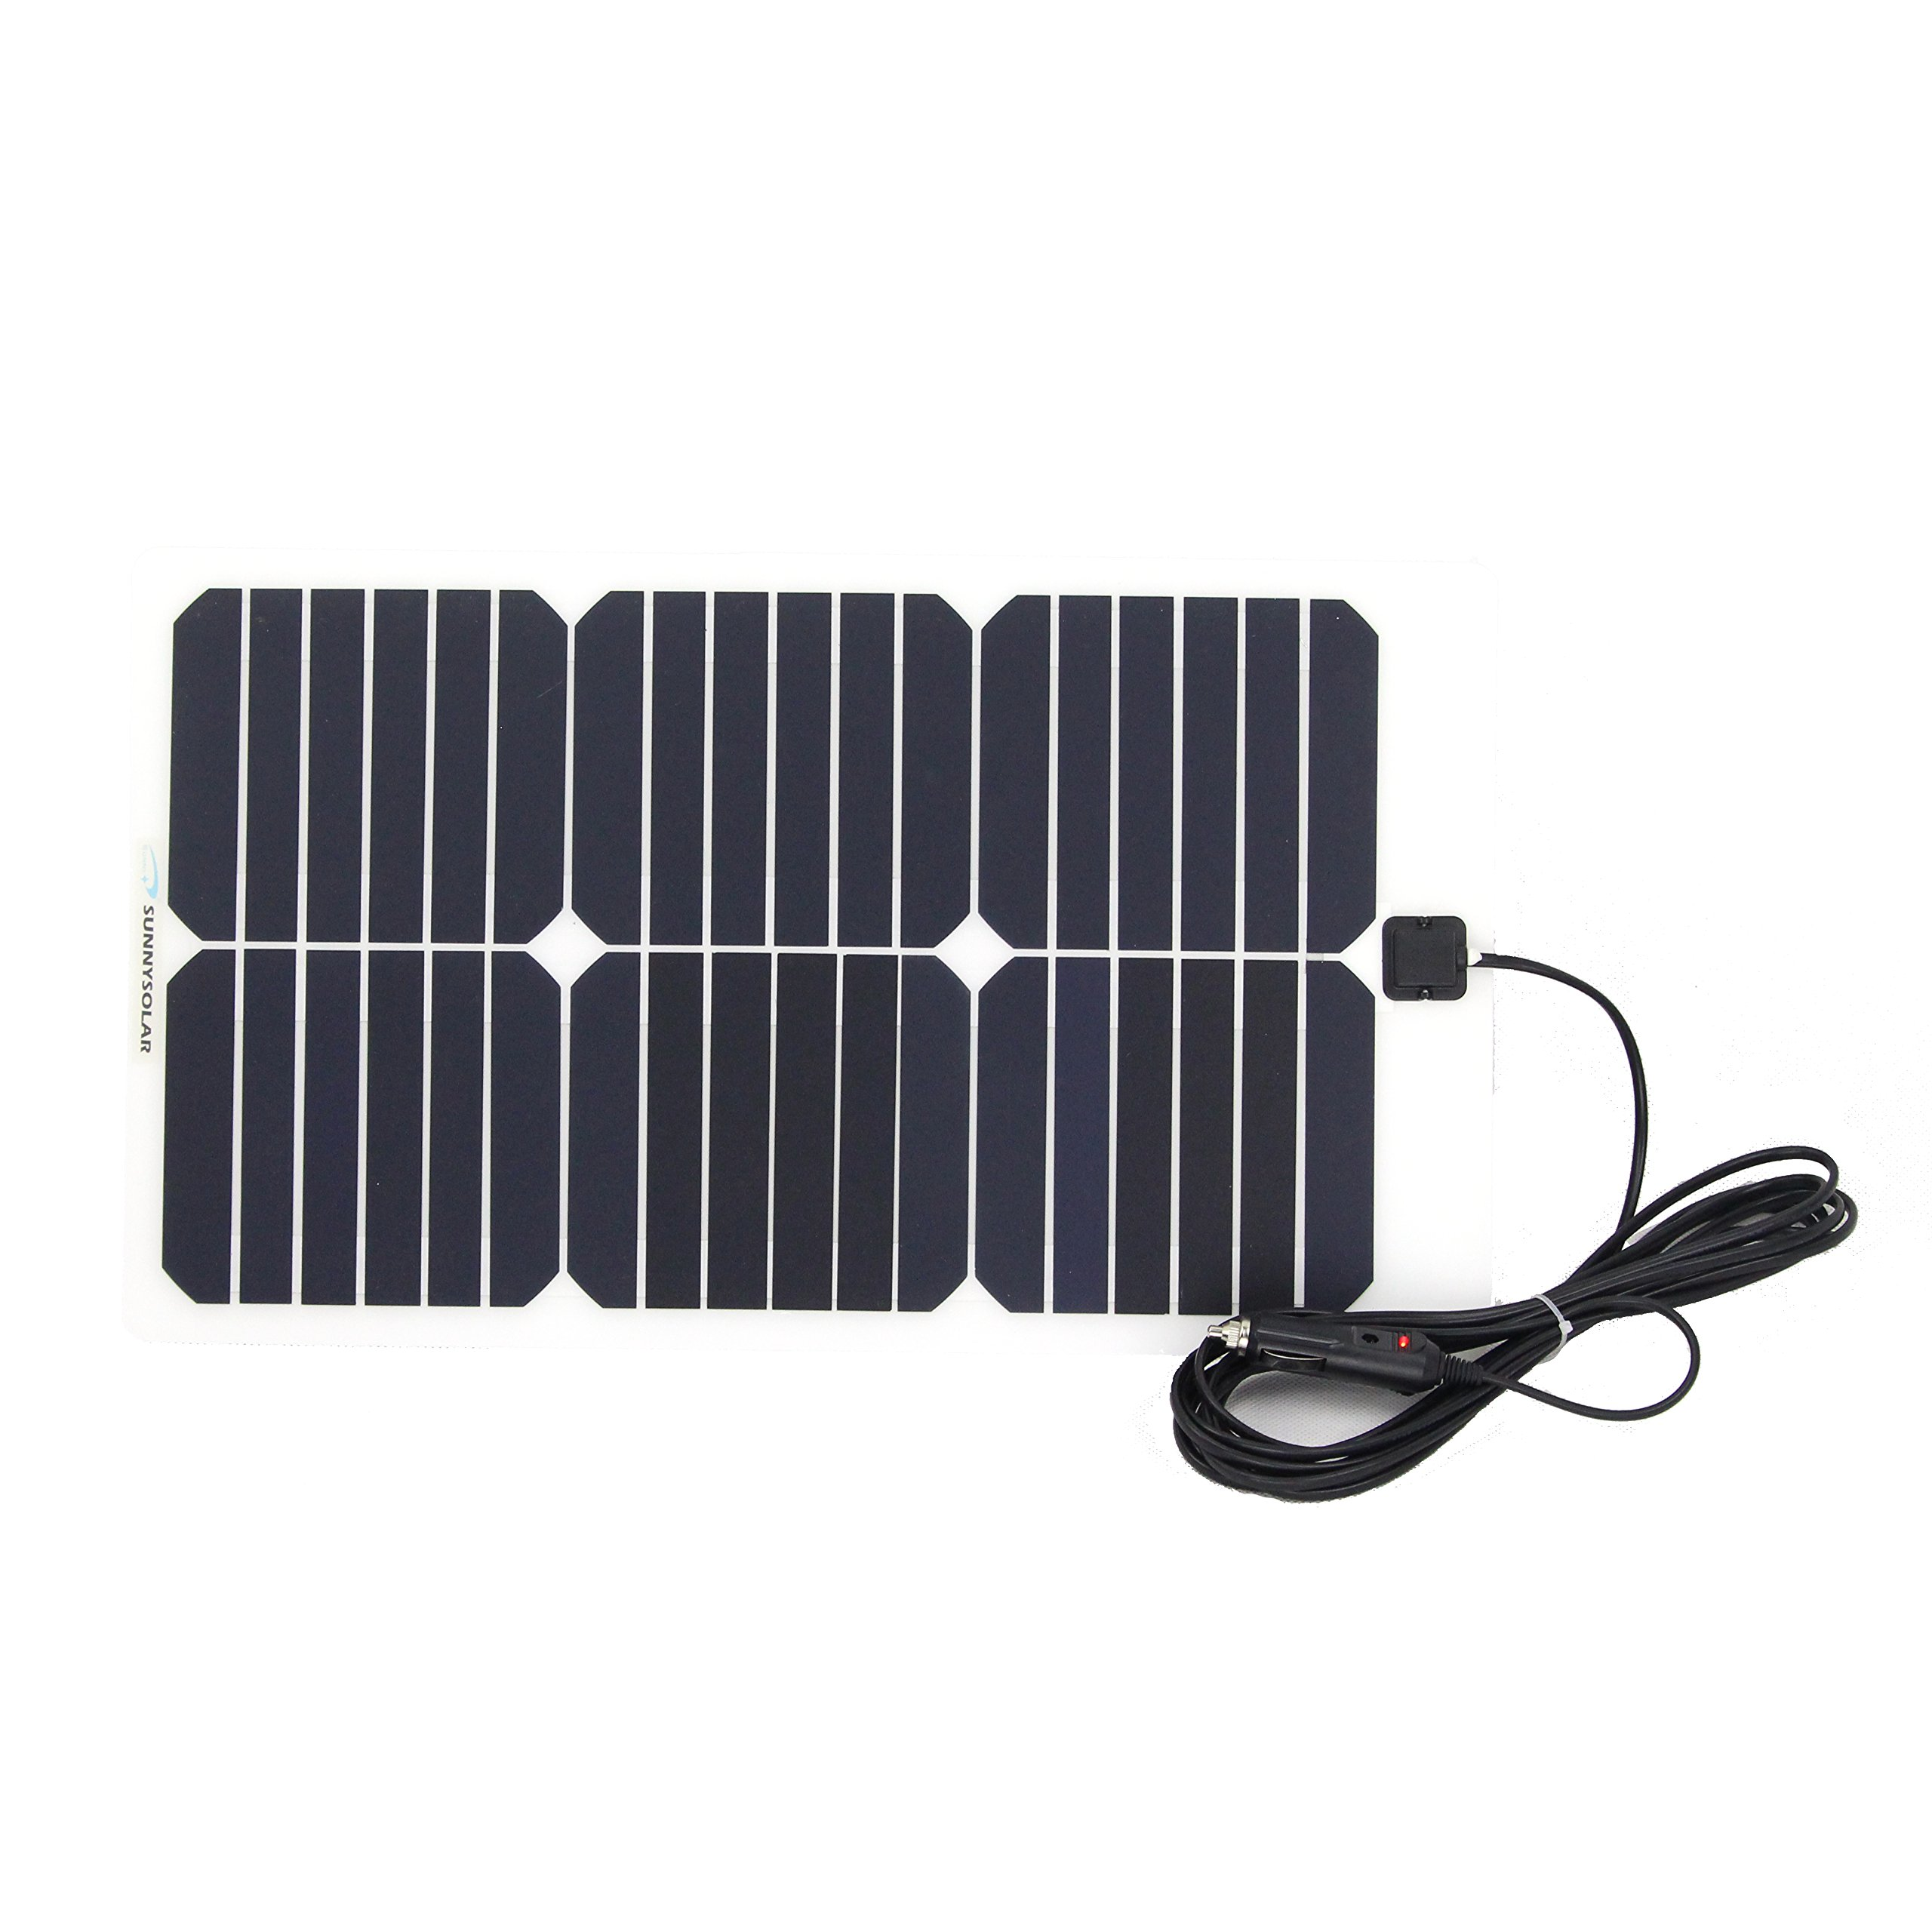 NW 1776 Flexible Solar Battery Maintainer 18V 12V 20W Solar Car Boat Power Panel Battery Charger Maintainer for Automobile Motorcycle Tractor Boat Batteries by NW 1776 (Image #2)